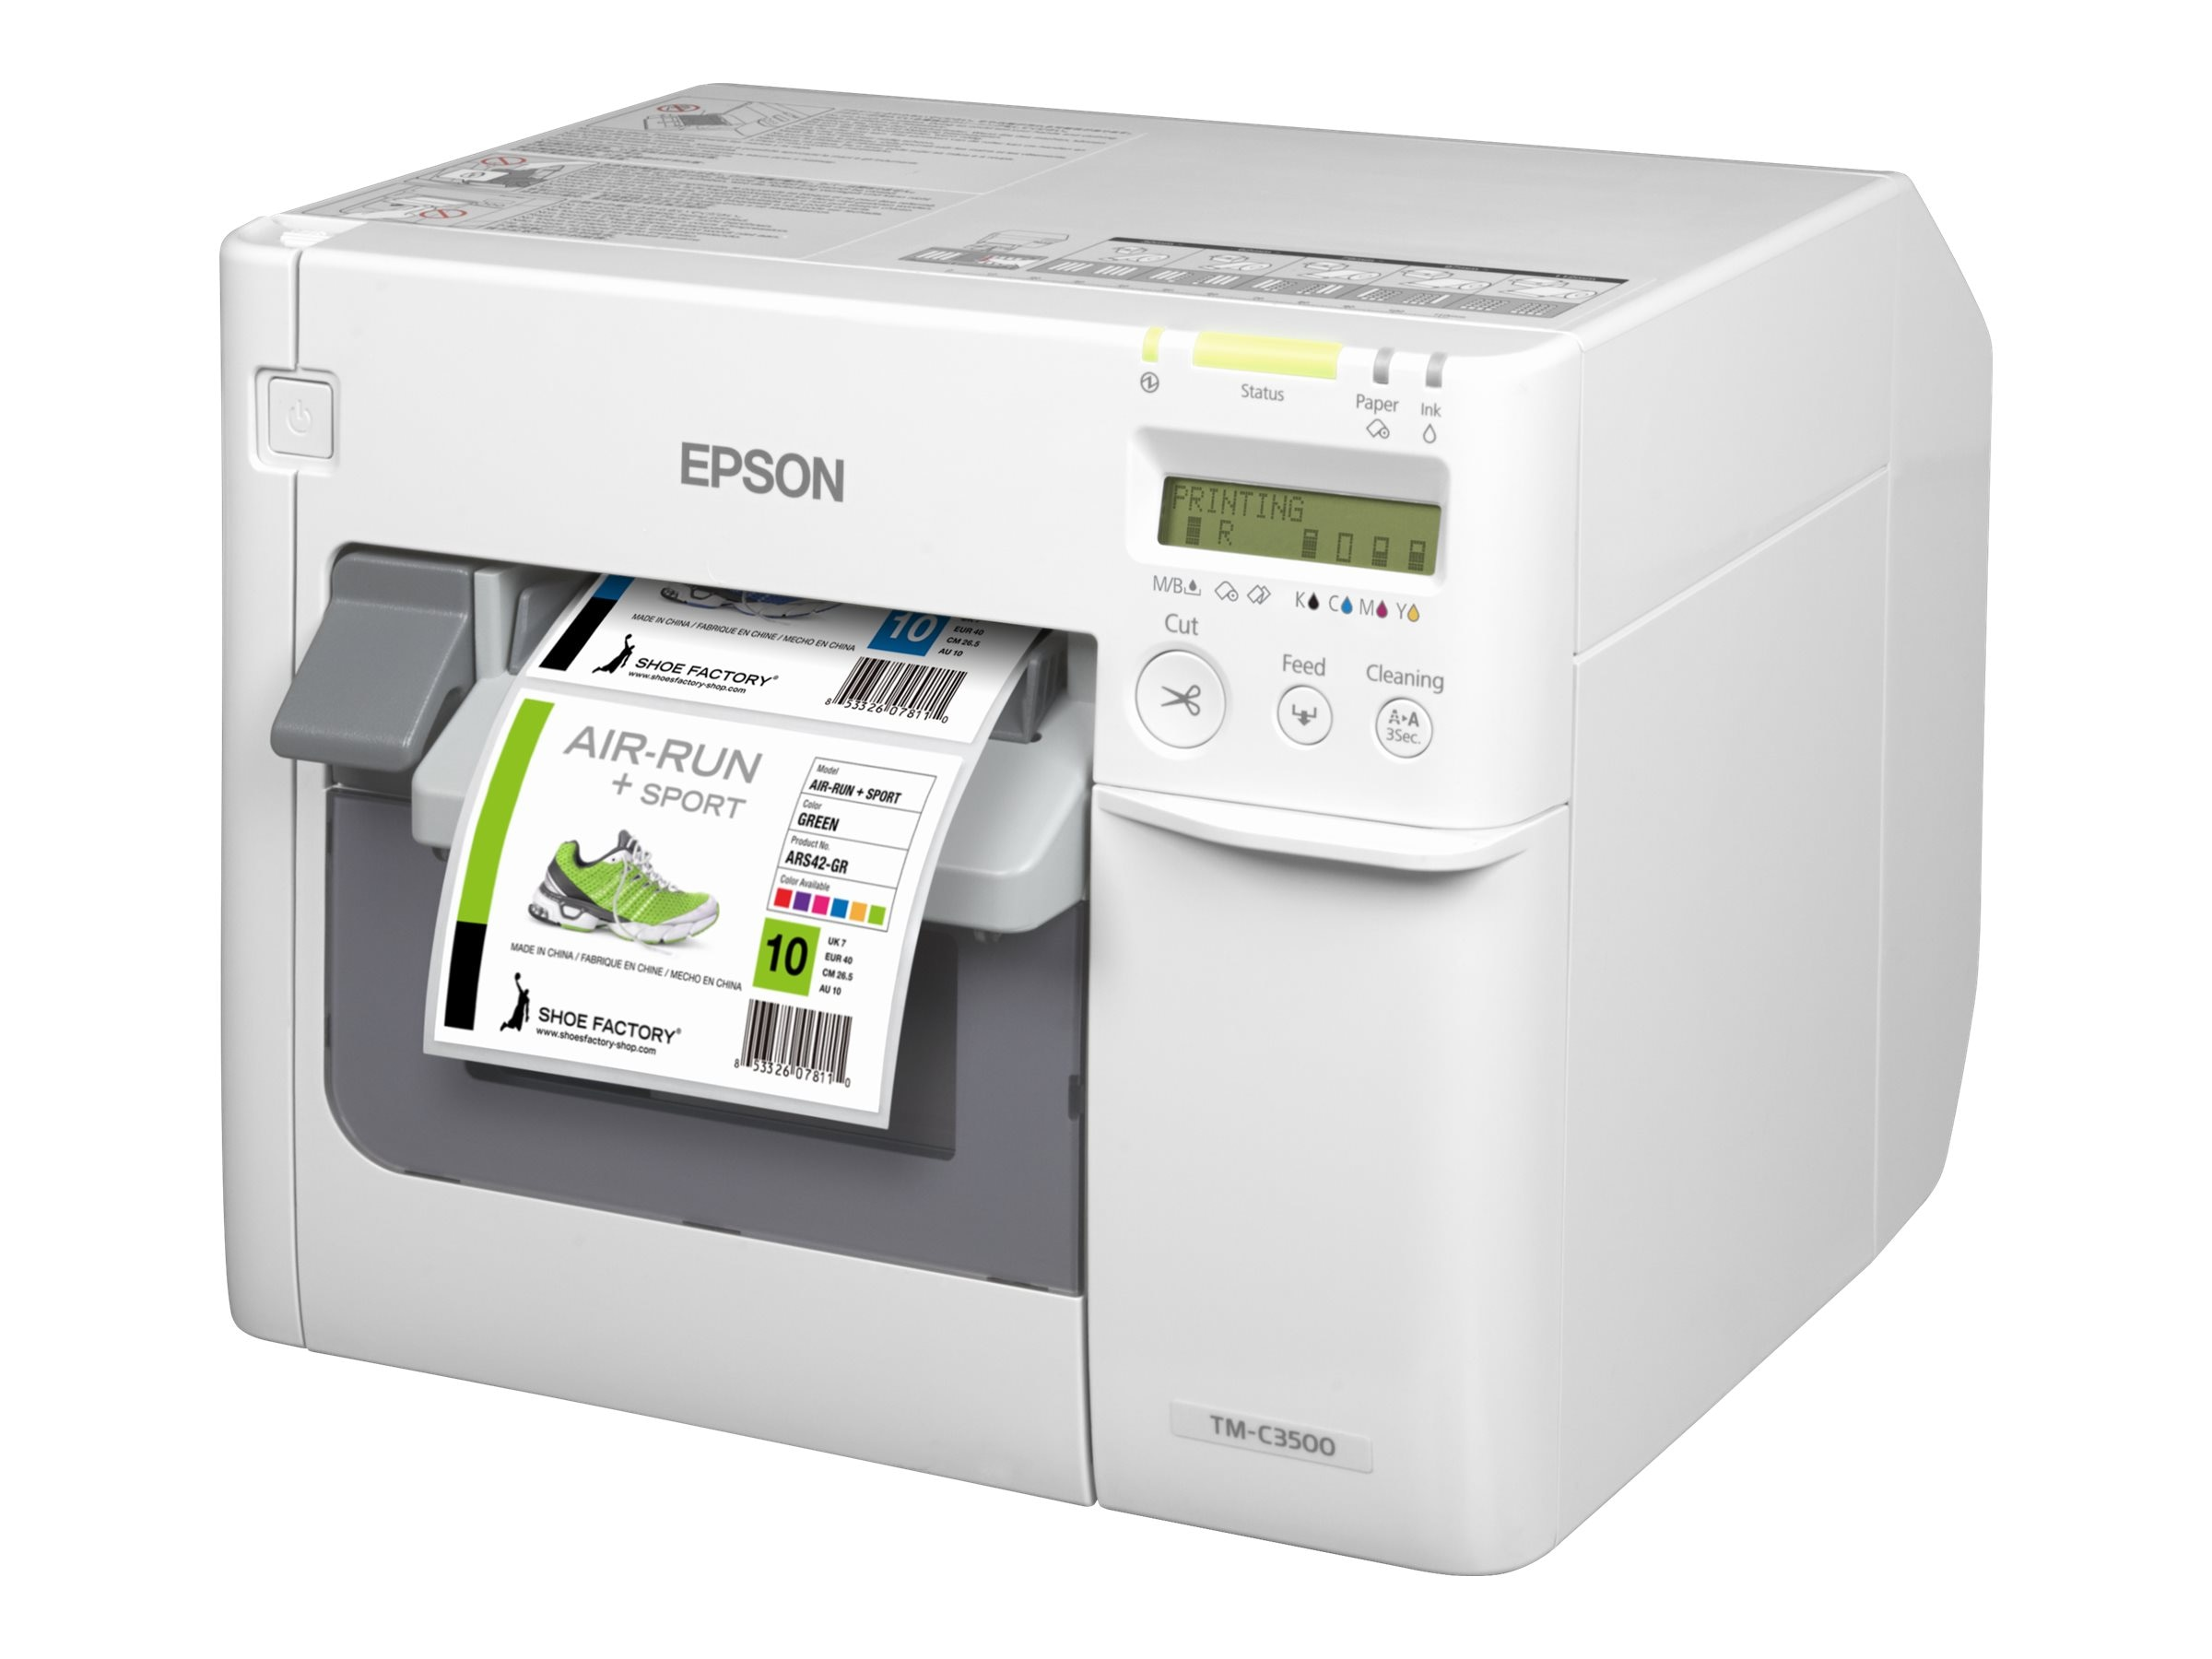 Epson ColorWorks TM-C3500 On-demand Color Inkjet Label Printer